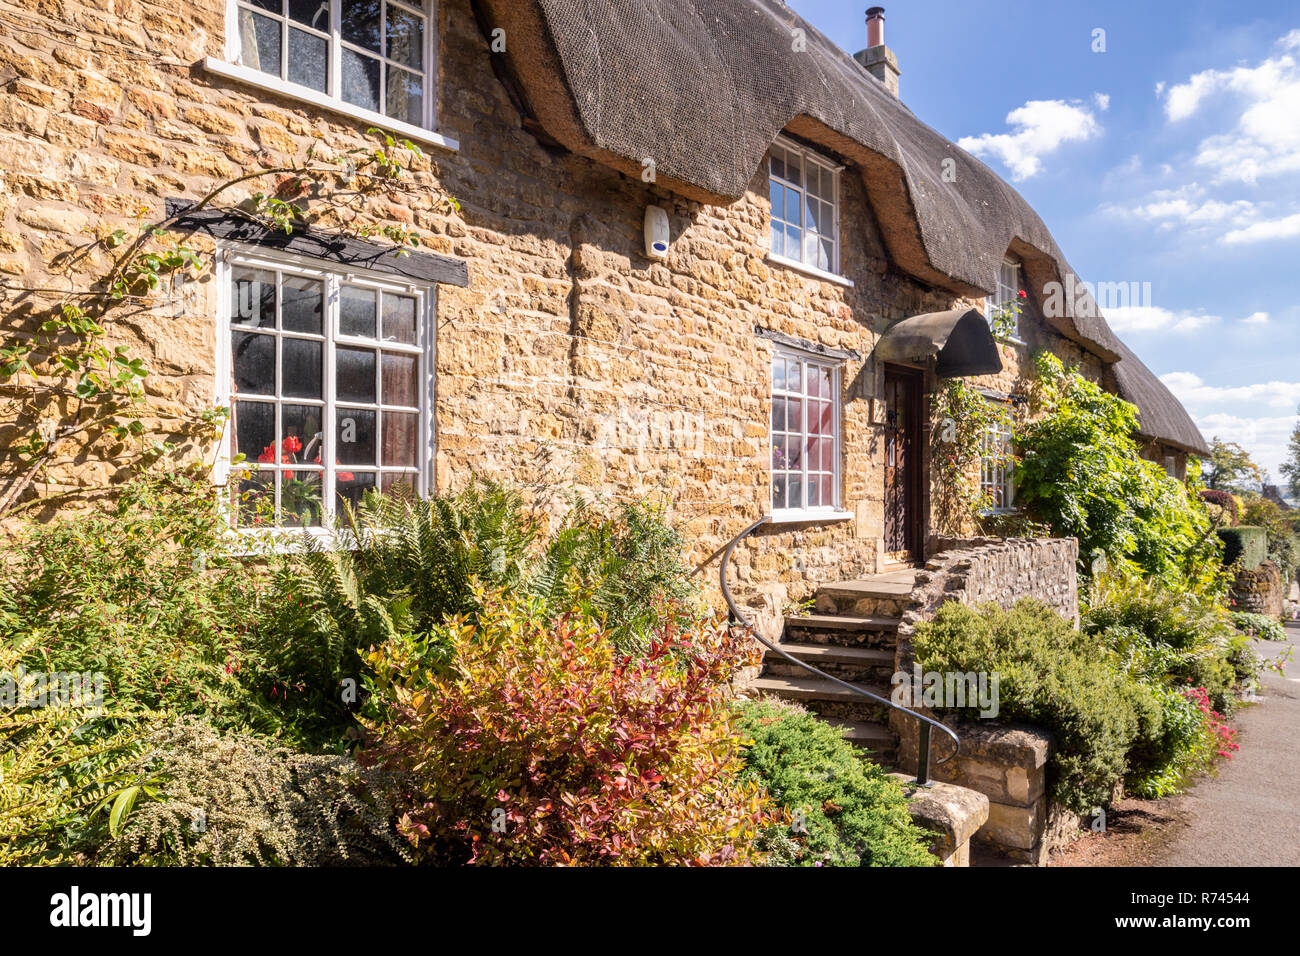 A thatched stone cottage in the Cotswold village of Ebrington, Gloucestershire UK - Stock Image